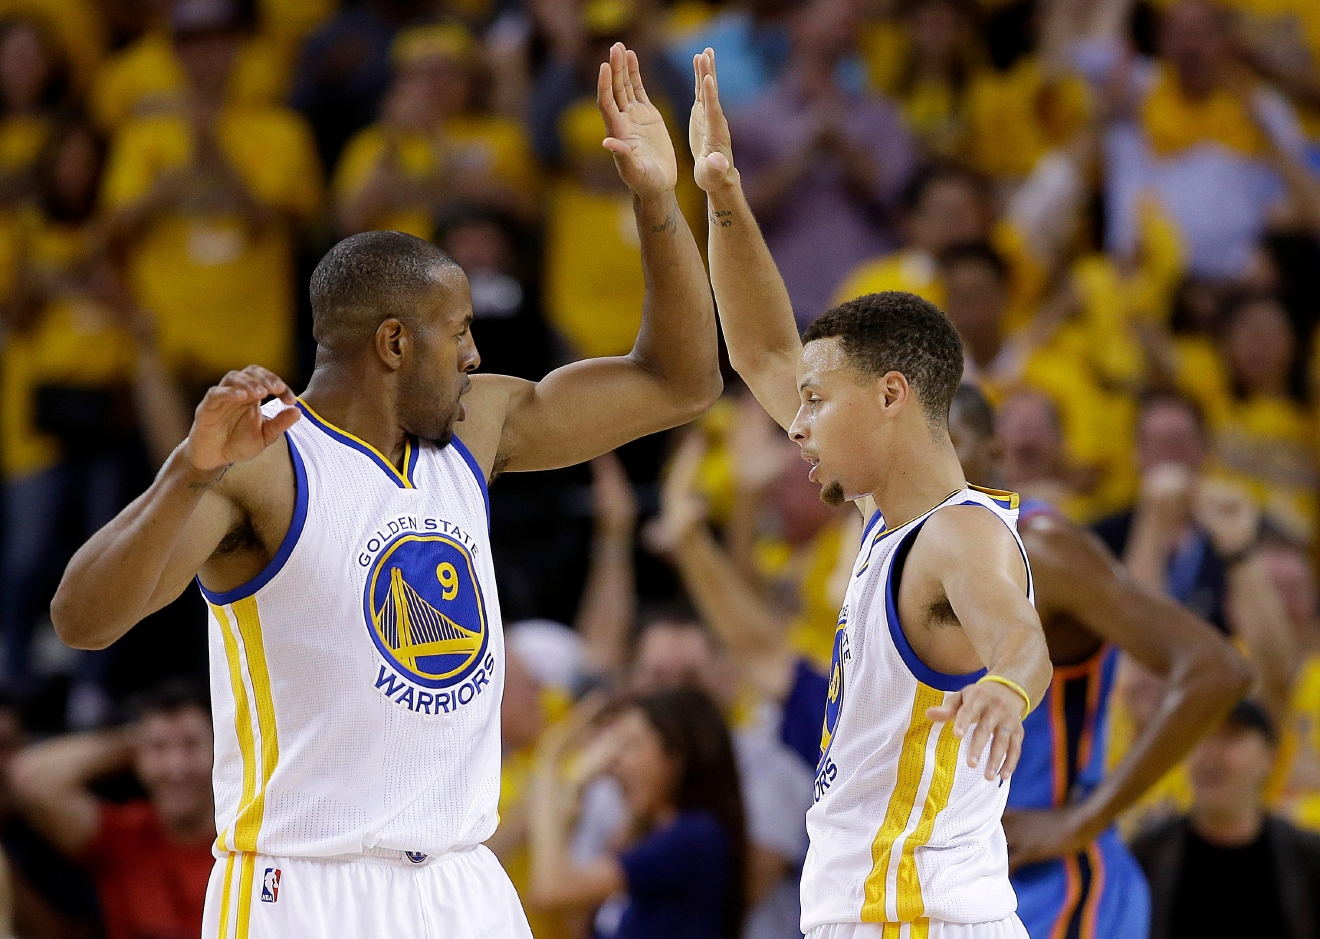 Golden State Warriors forward Andre Iguodala (9) and guard Stephen Curry (30) celebrate after scoring against the Oklahoma City Thunder during the first half of Game 2 of the NBA basketball Western Conference finals in Oakland, Calif., Wednesday, May 18, 2016. (AP Photo/Marcio Jose Sanchez)